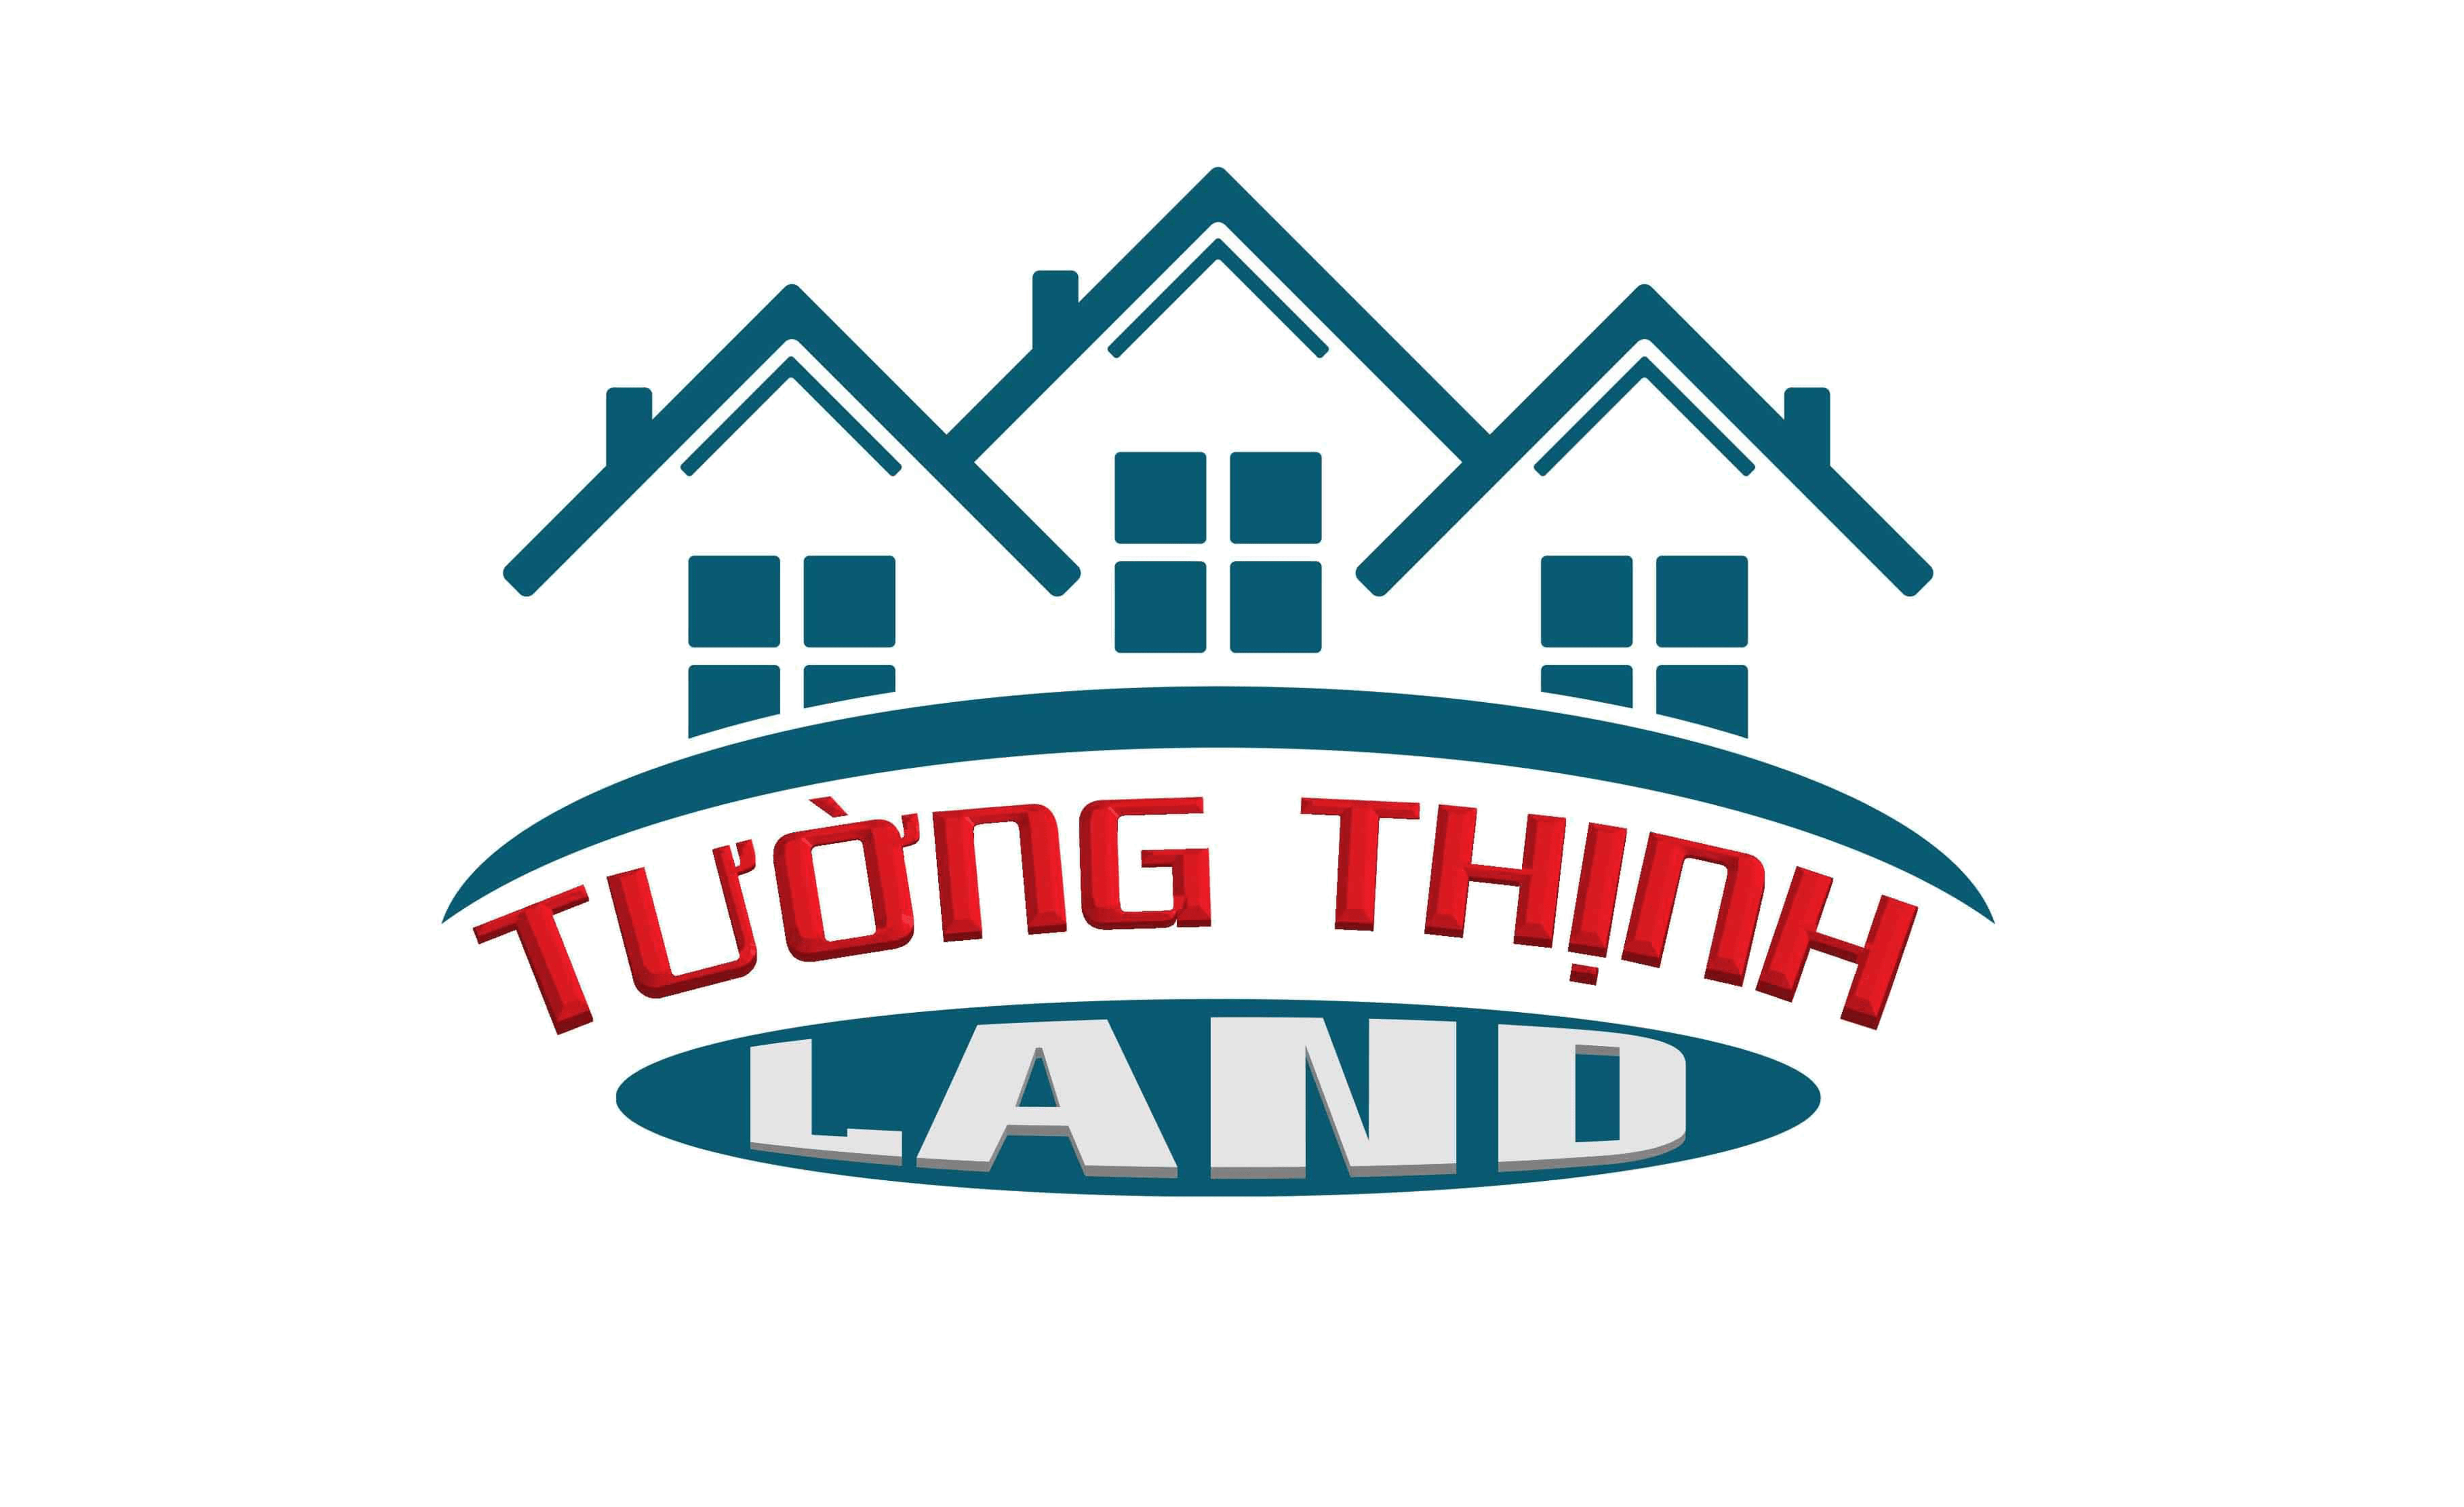 logo-cong-ty-bds-tuong-thinh-land